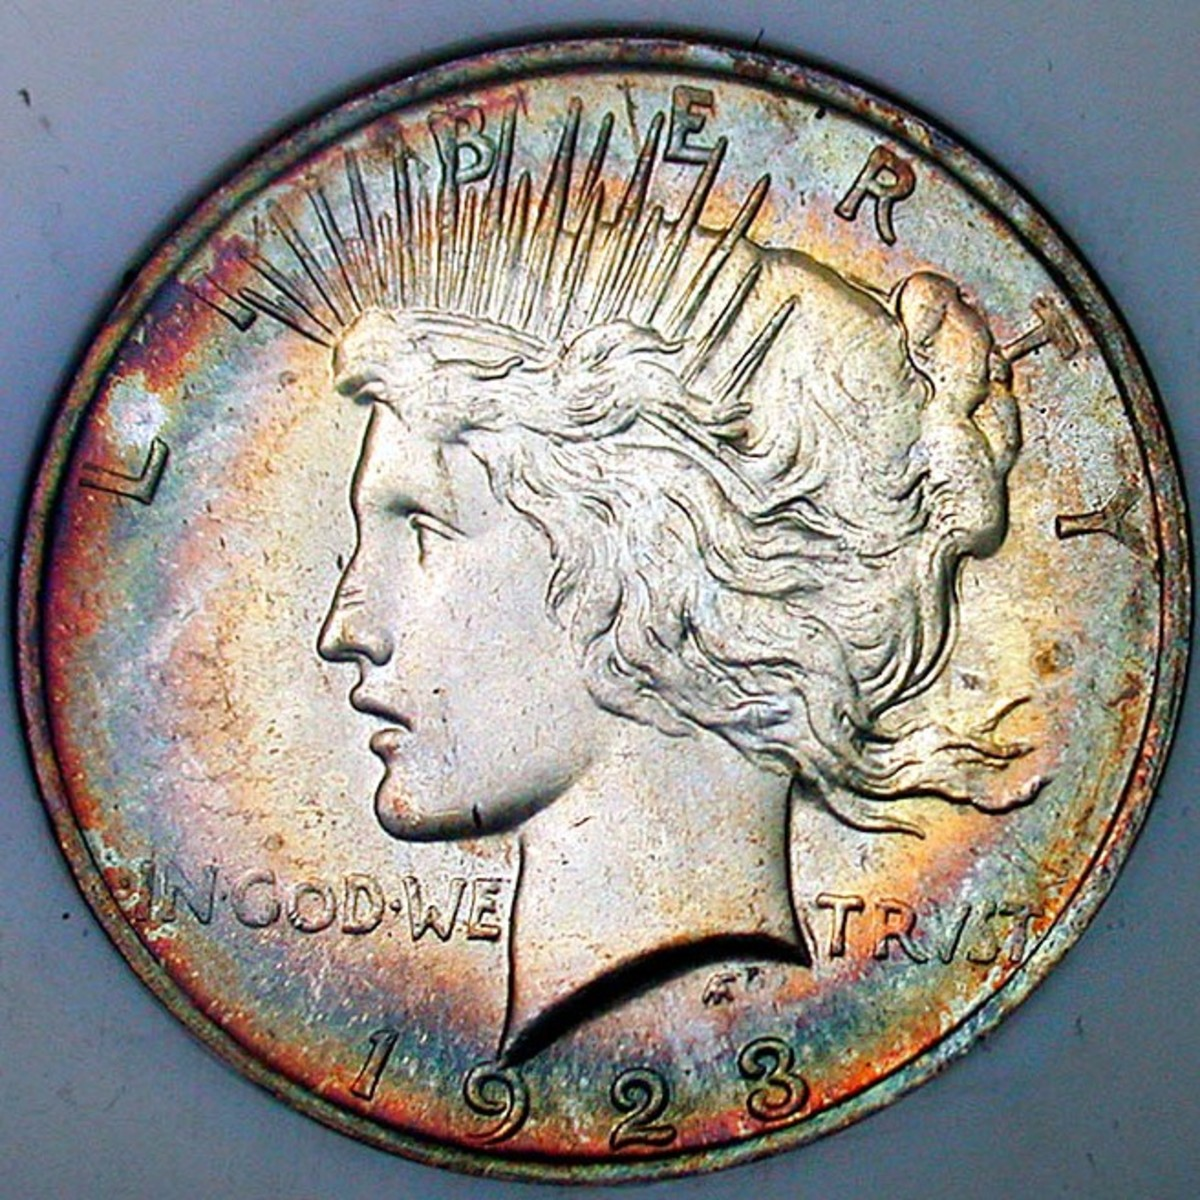 1923 Peace Dollar Obverse Toned. Photo Courtesy: coinpage.com